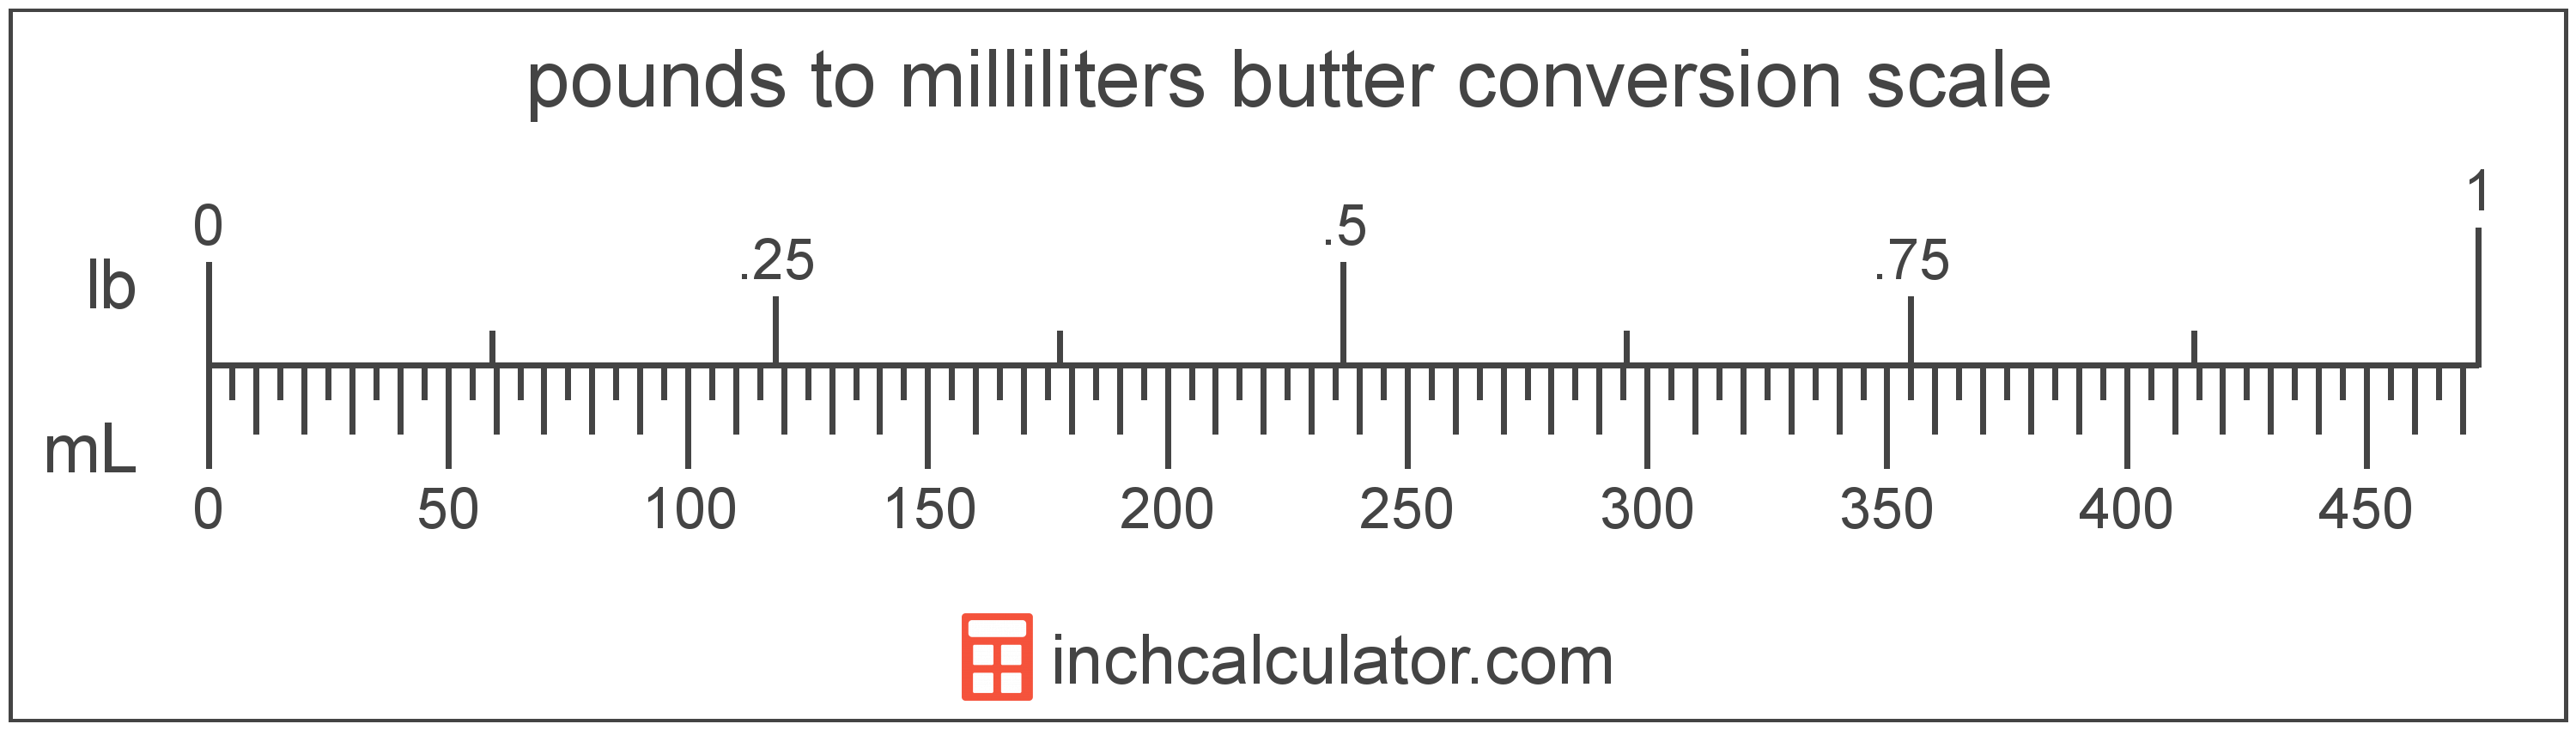 conversion scale showing milliliters and equivalent pounds butter values